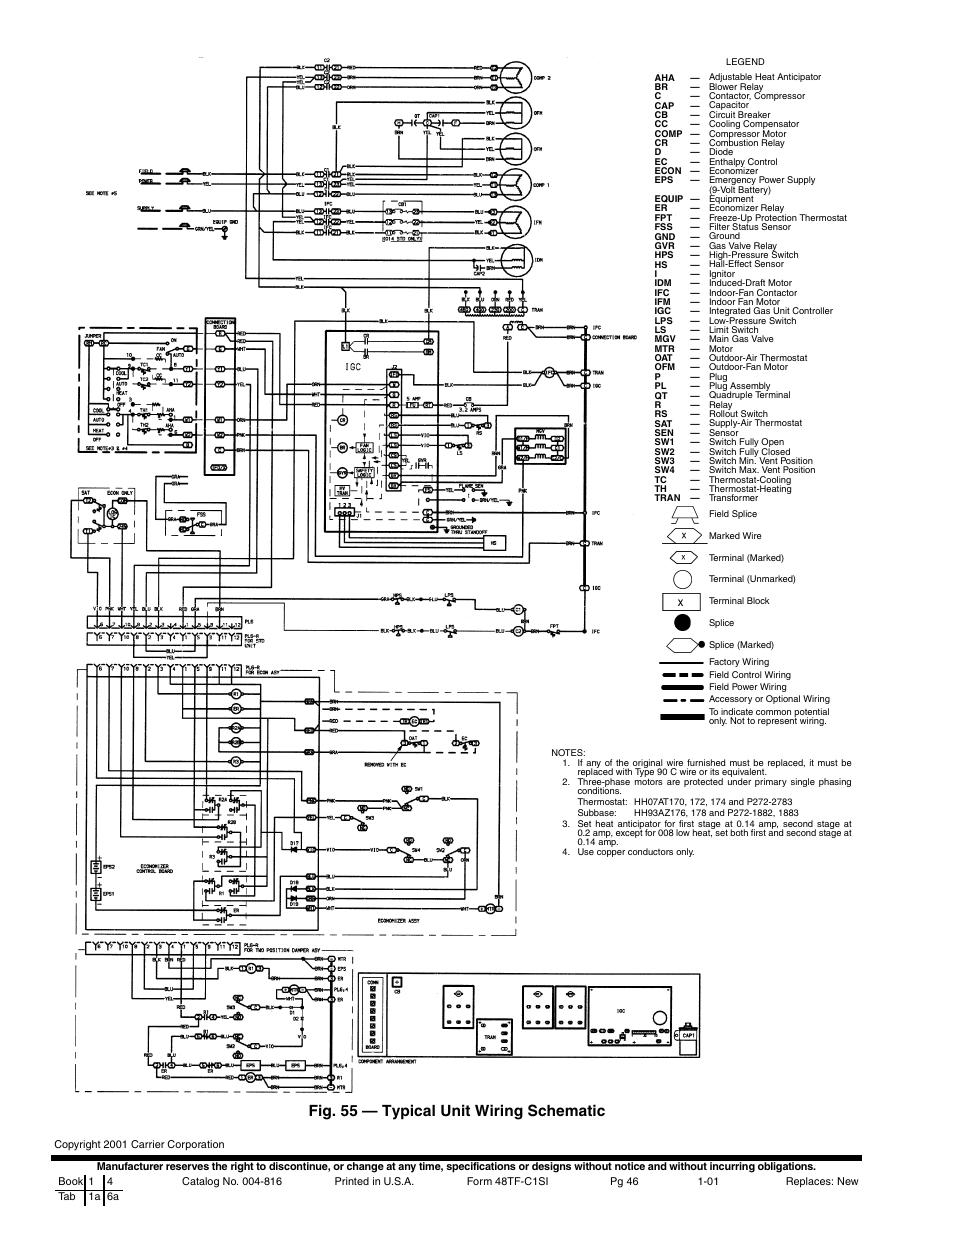 [DIAGRAM] Carrier Transicold Wiring Diagram FULL Version